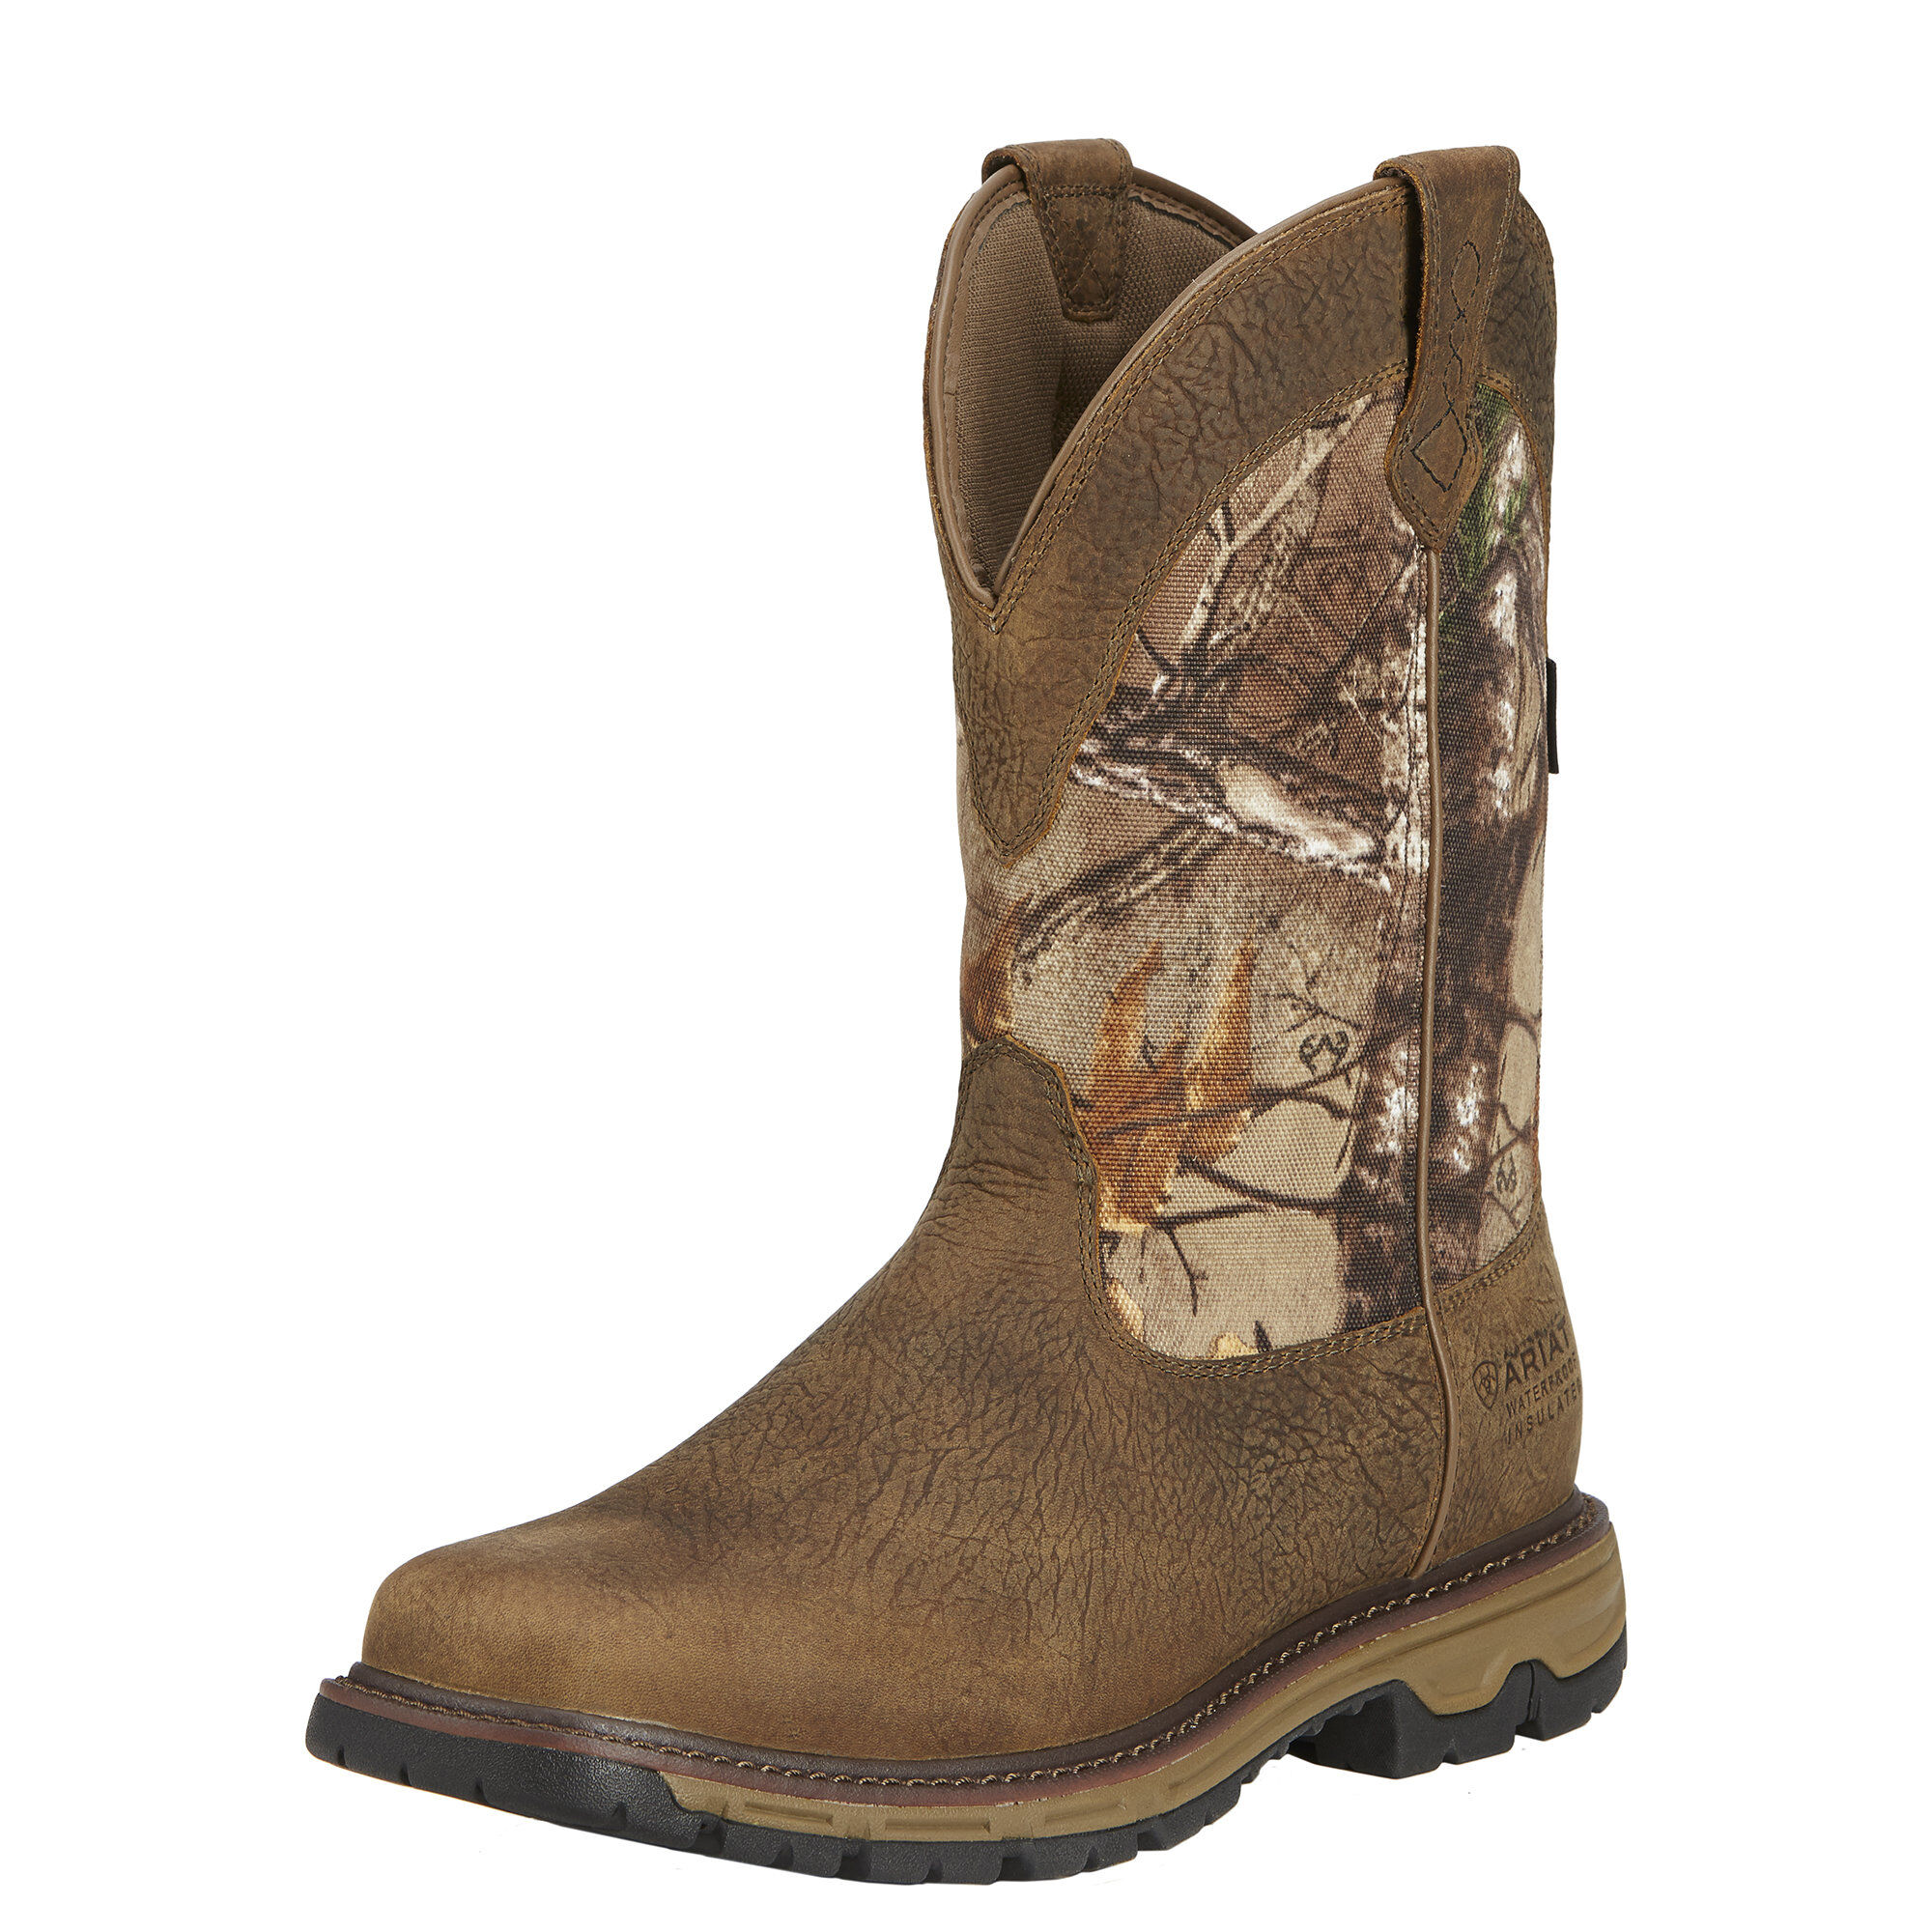 Conquest Pull-On Waterproof 400g Hunting Boot